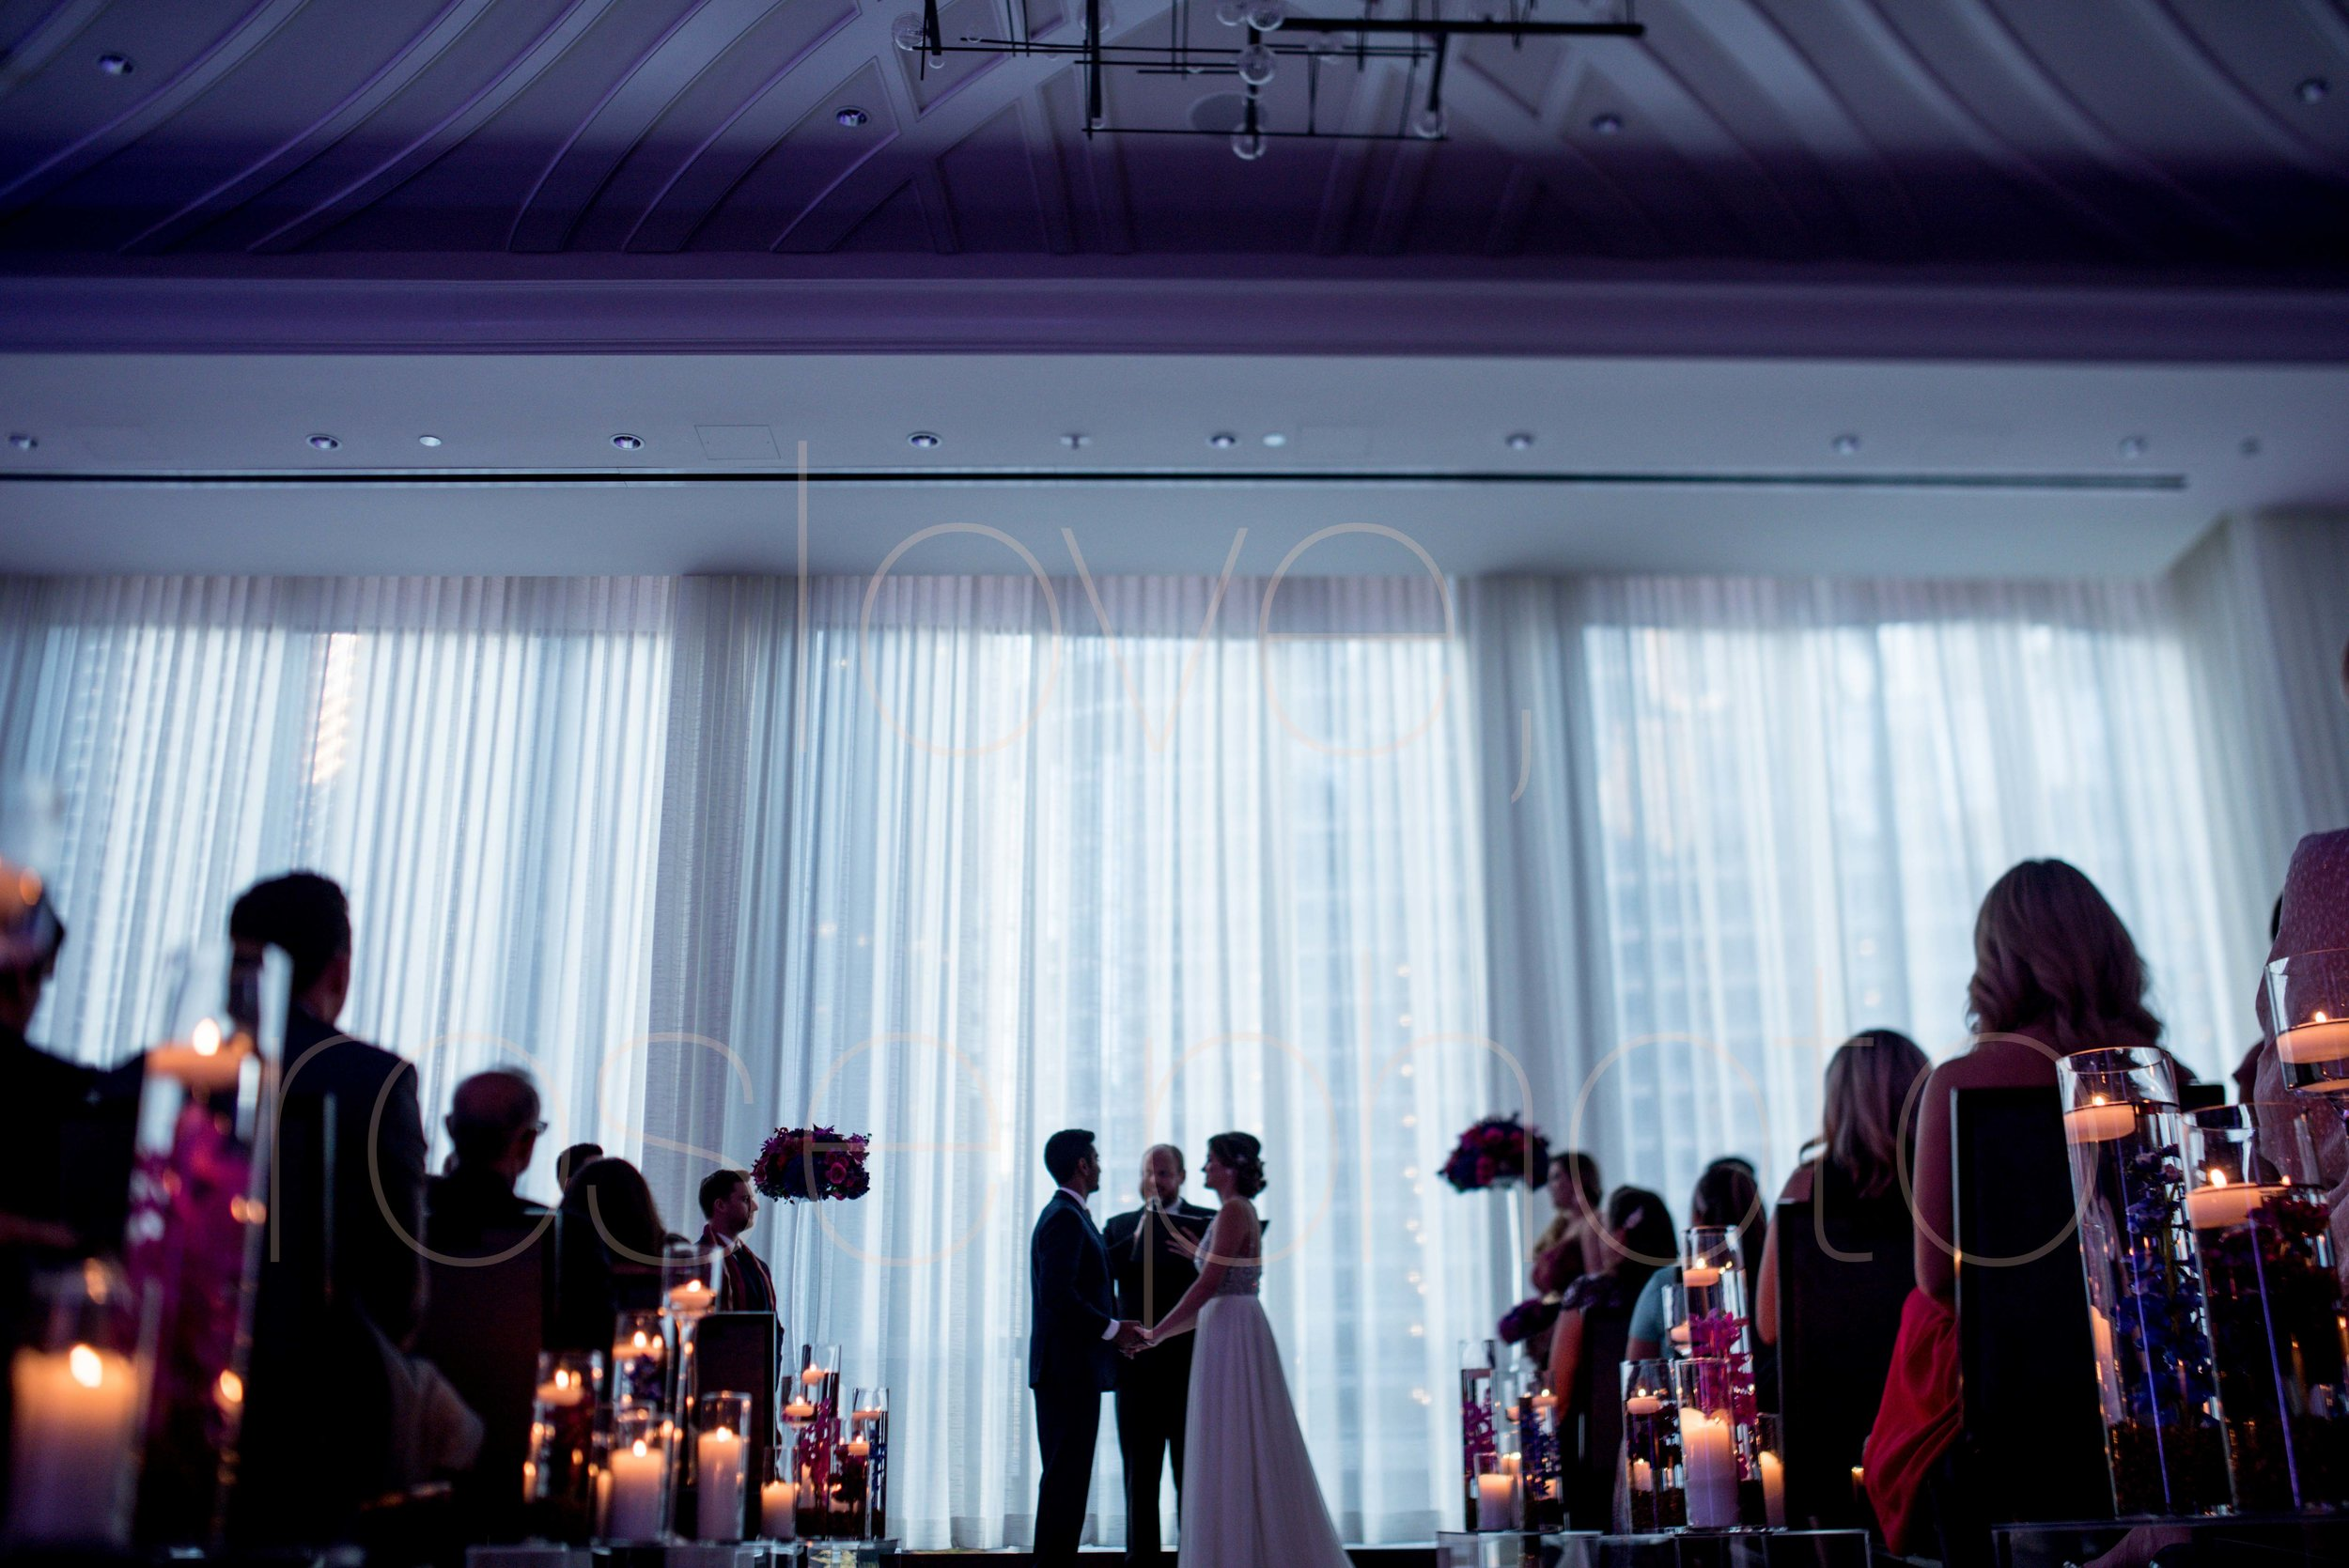 Best of Chicago wedidngphotography LondonHouse Indian wedding -23.jpg